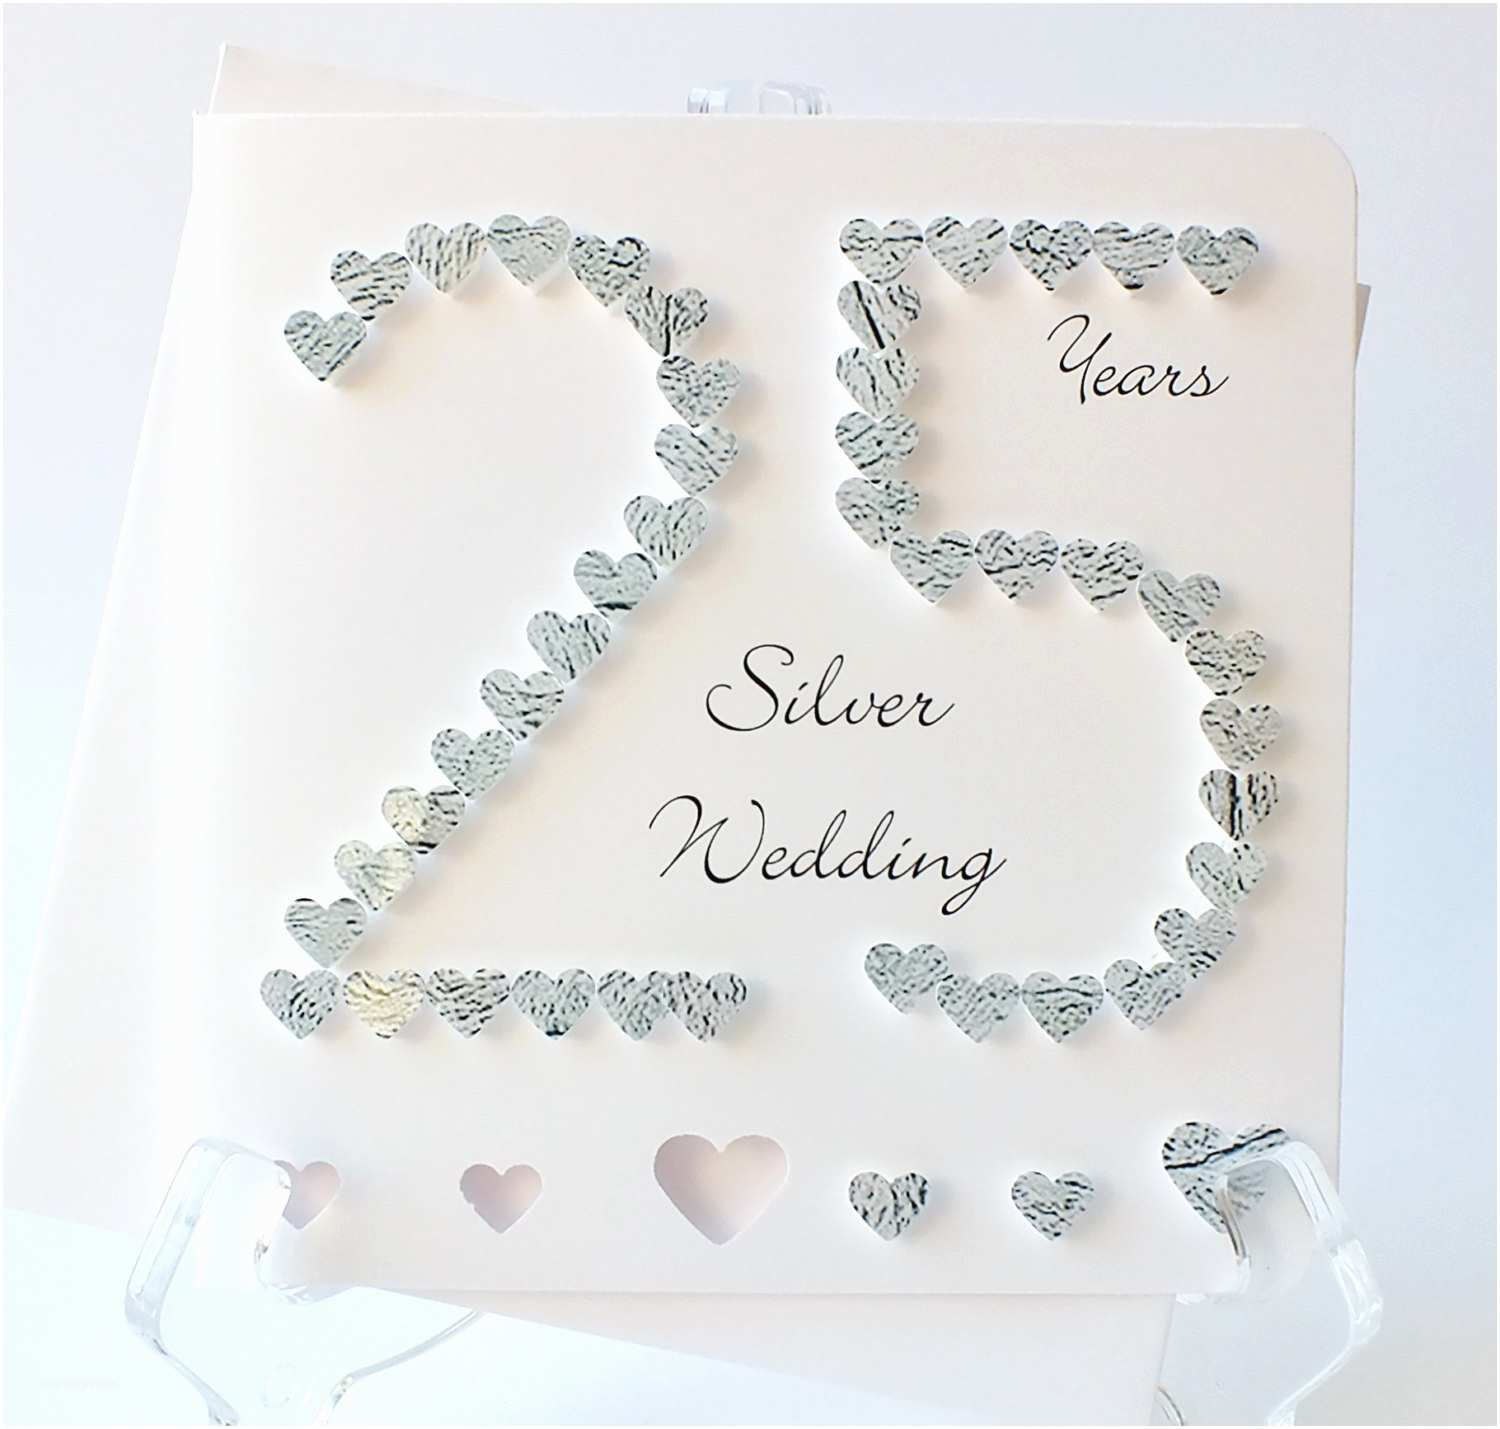 25th Wedding Anniversary Invitation Cards Free Download 25th Anniversary Cards for Husband